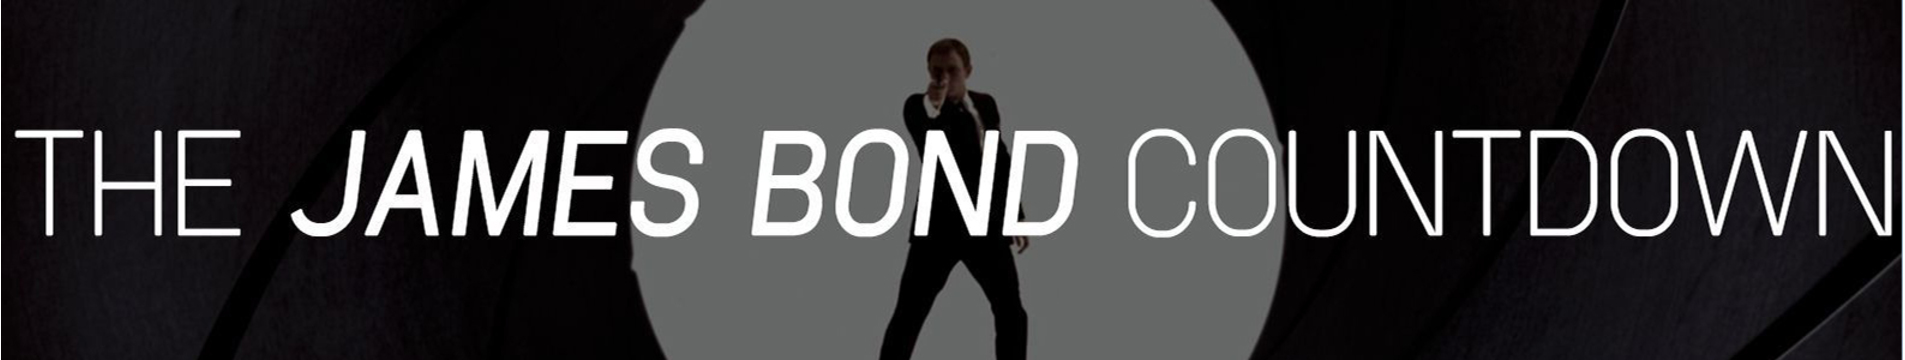 The-James-Bond-Countdown.jpg